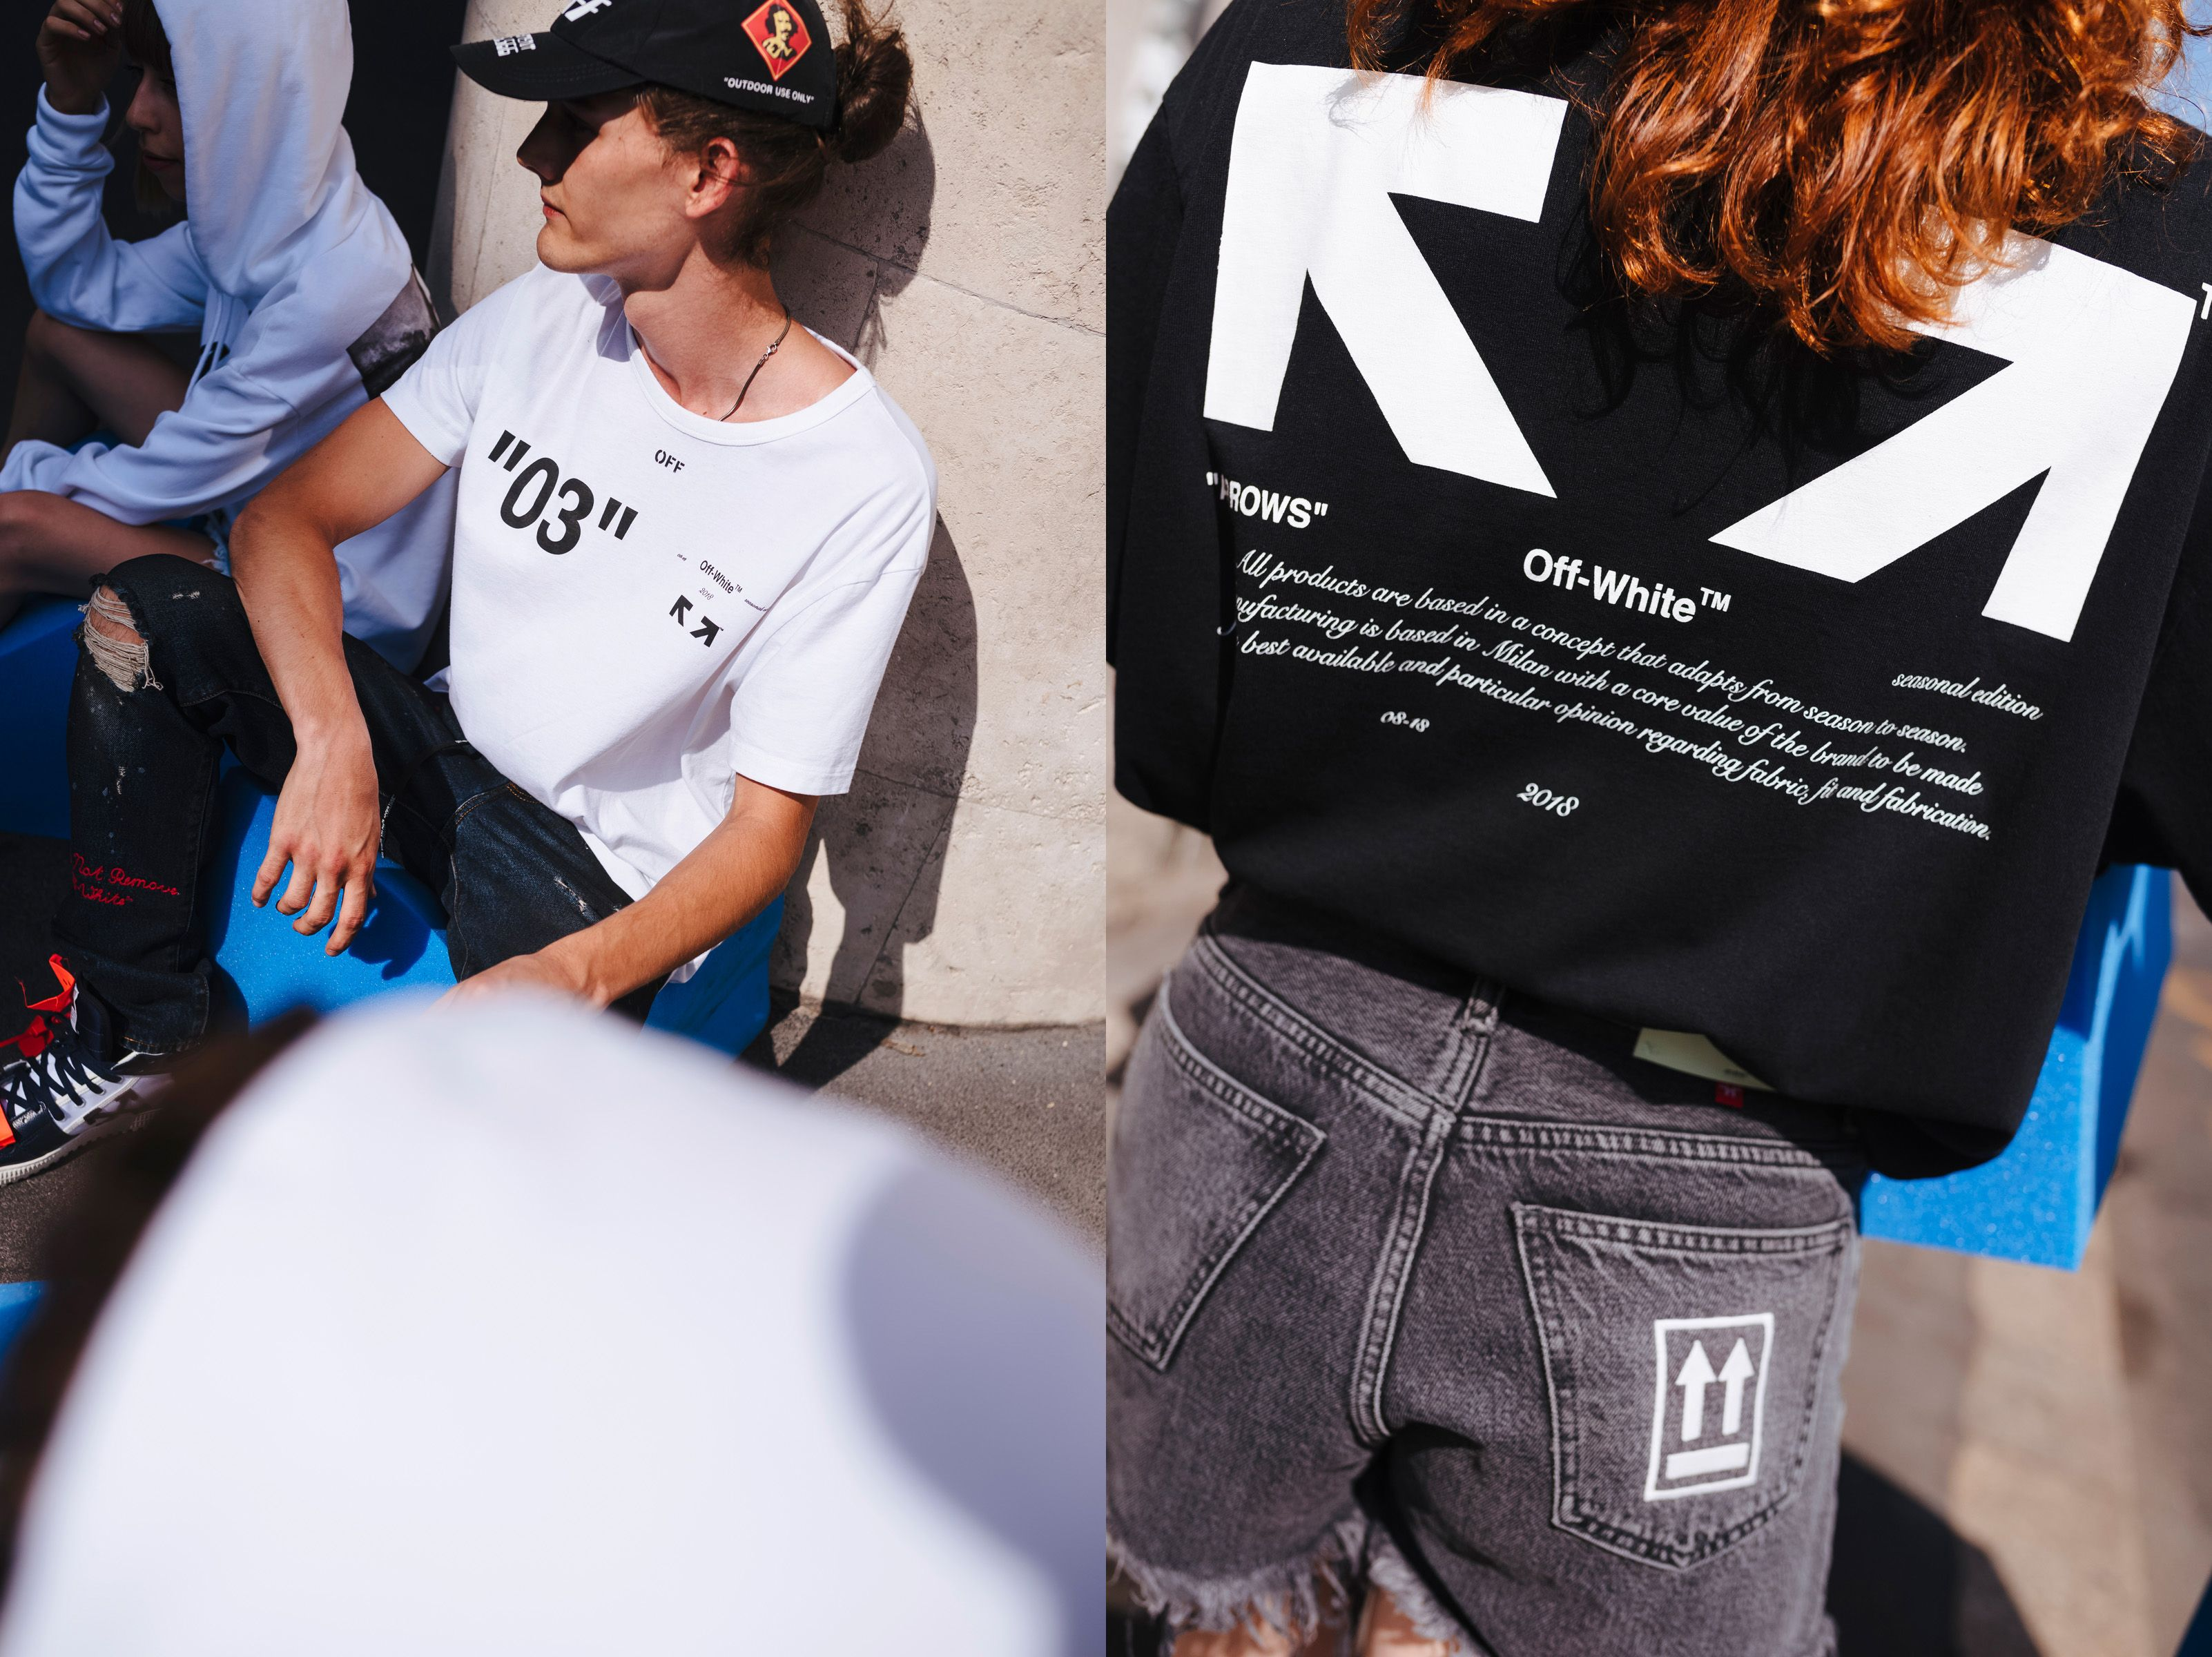 OFF-WHITE, OFF-WHITE For All系列, OFF-WHITE平價系列, For All,台灣,台北,價格